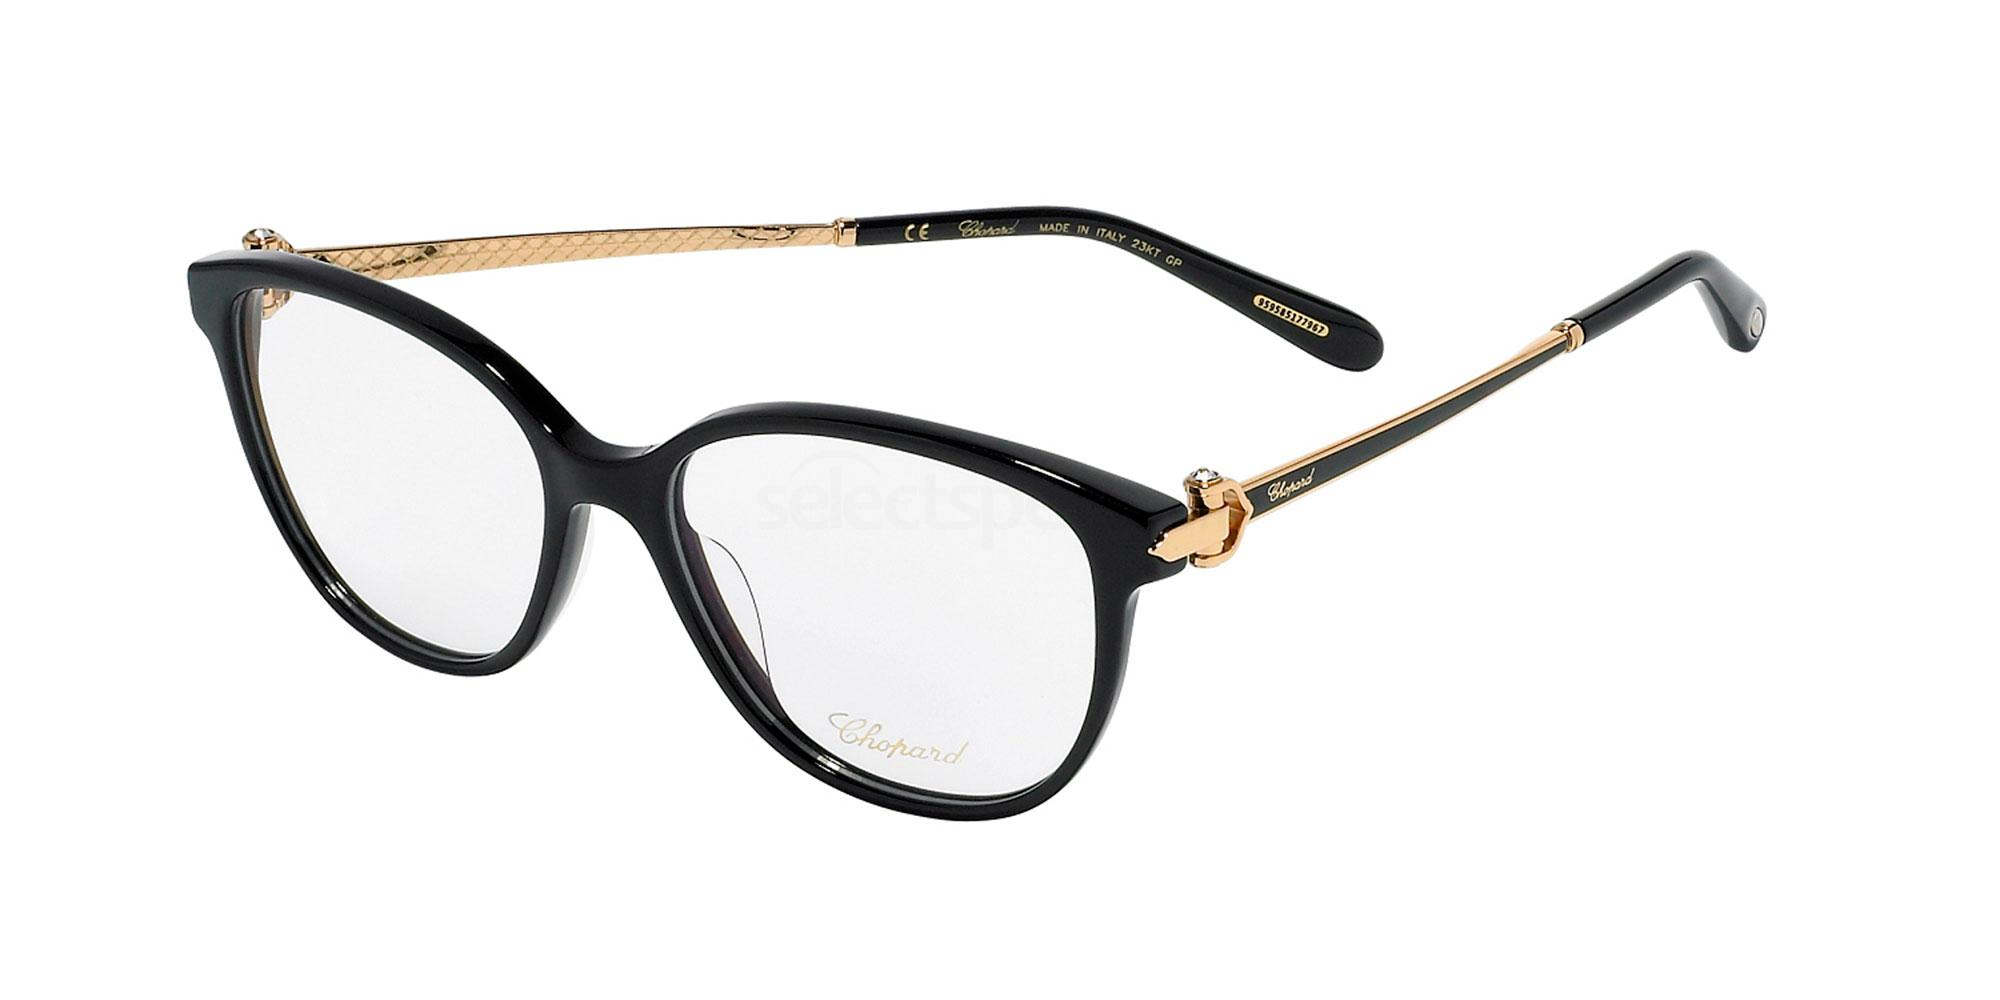 0700 VCH245S Glasses, Chopard